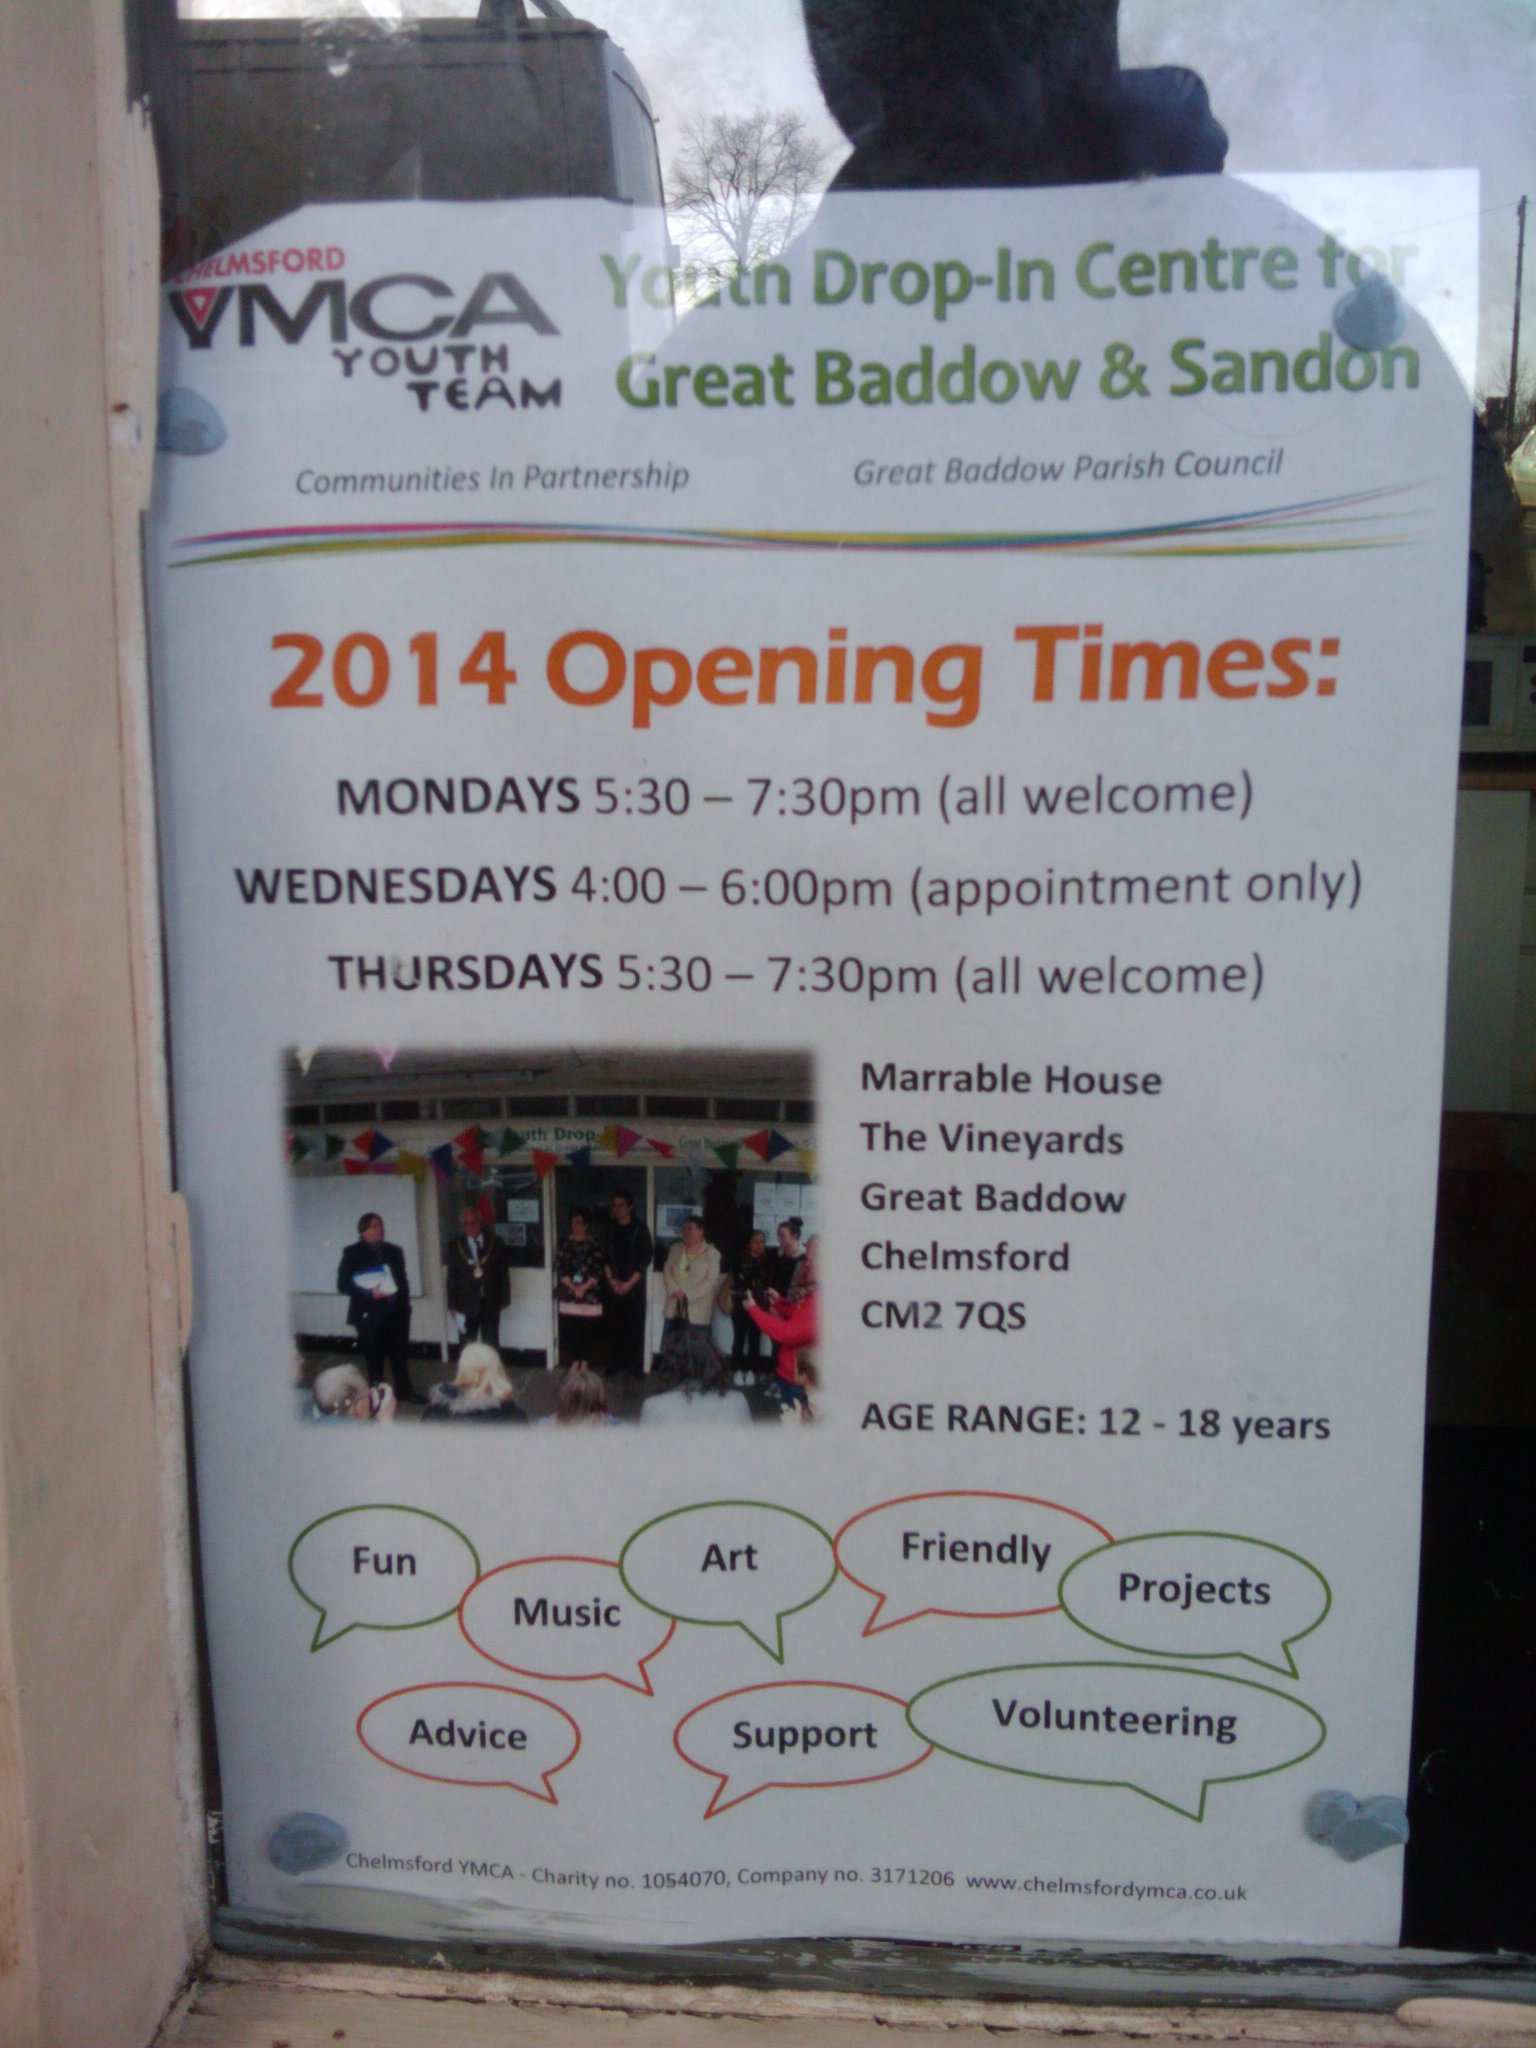 The Youth Drop-In opening times and information